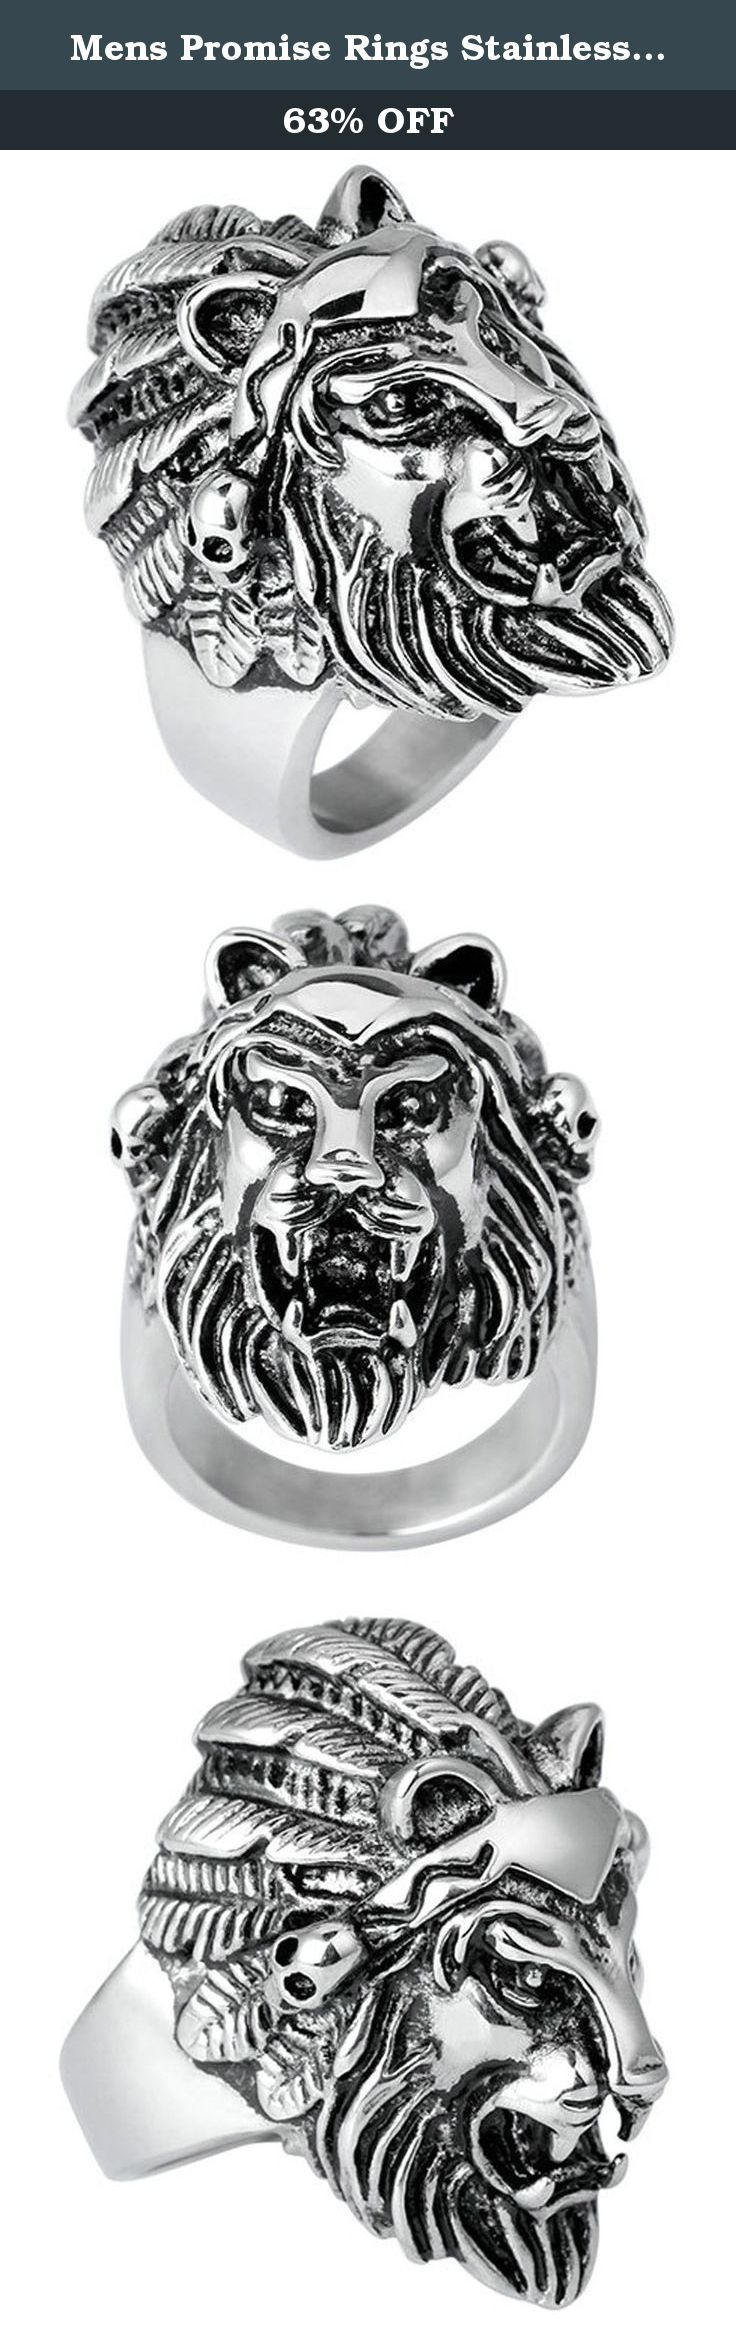 Mens Promise Rings Stainless Steel Silver Black Punk Gothic The Lion King Size 12 by Aienid. Why Need the Rings? As Now It is a Modern Society,and Ring is One of Kind Things That can Show Up Your Senior Fashion and Taste.They Can Accent Your Dressing and Add You more Attractiveness, Making You Looks more Confident and Rational. Besides,Rings also can Show Your Love and Promise to Someone Why Choose Aienid Rings? As Aienid's Rings are not only in Lean Workmanship, Excellent Quality But…